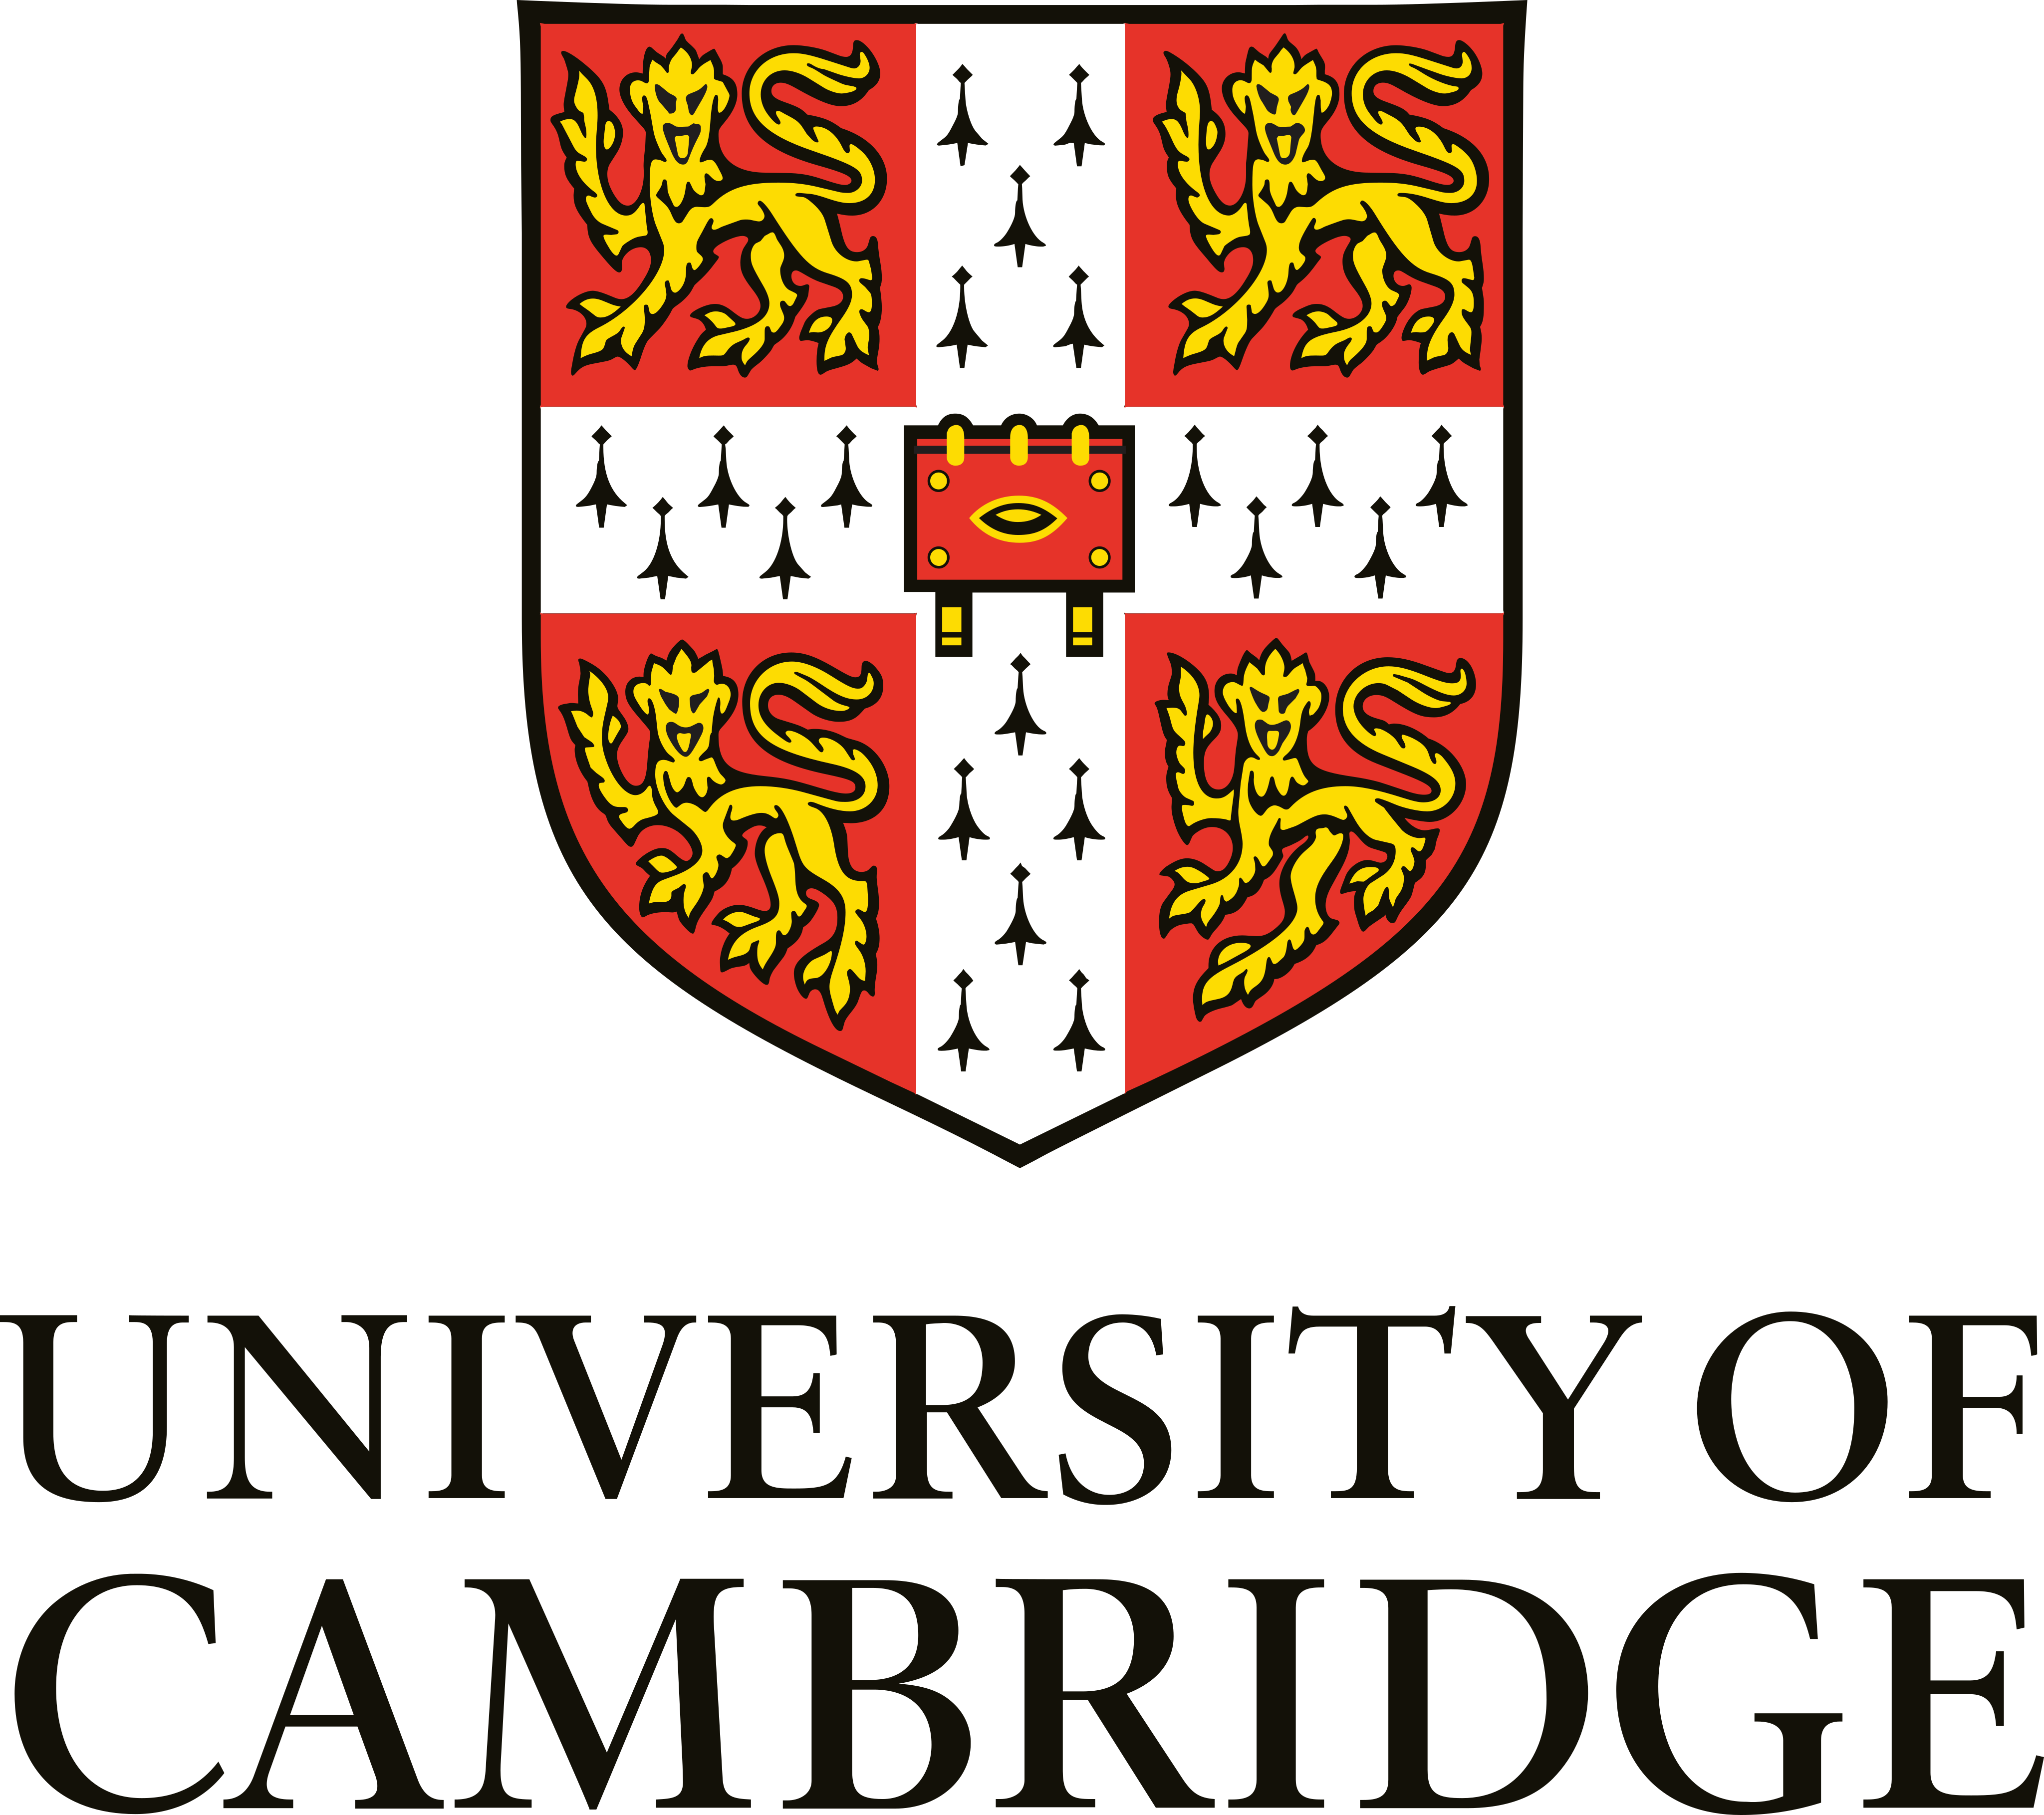 university of cambridge logo 1 - University of Cambridge Logo